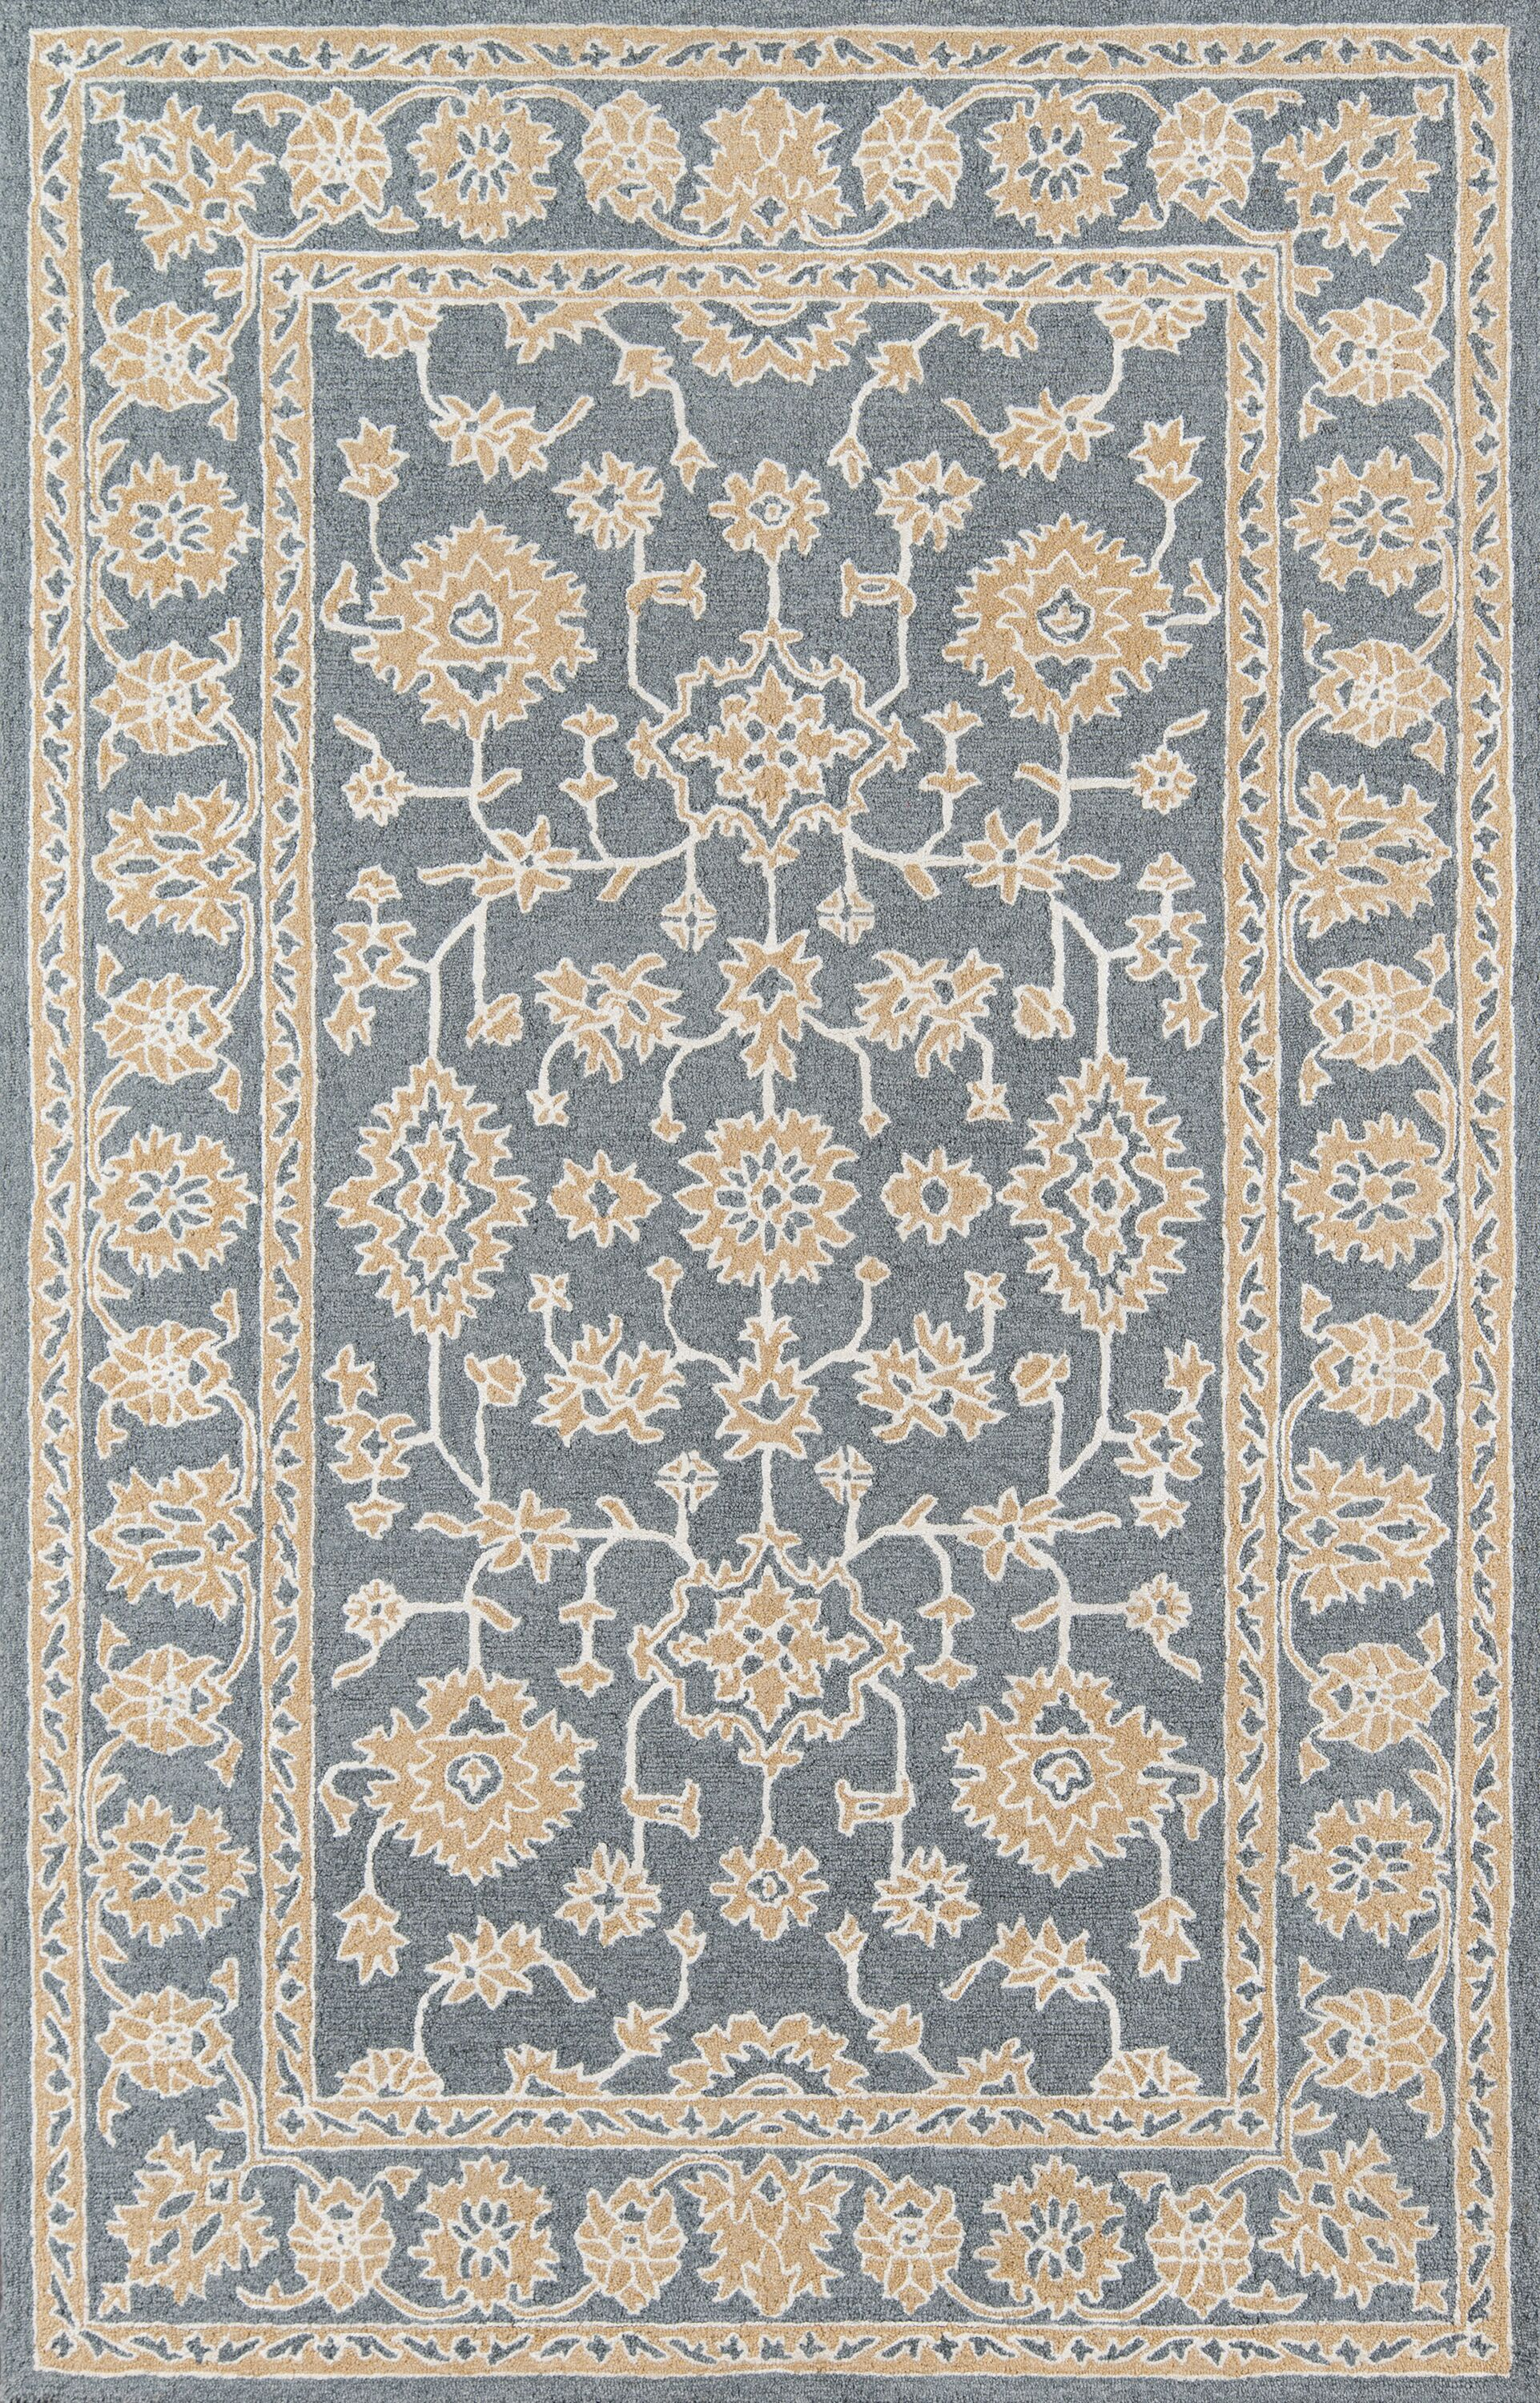 Paisley Hand-Tufted Gray Area Rug Rug Size: Rectangle 8' x 10'